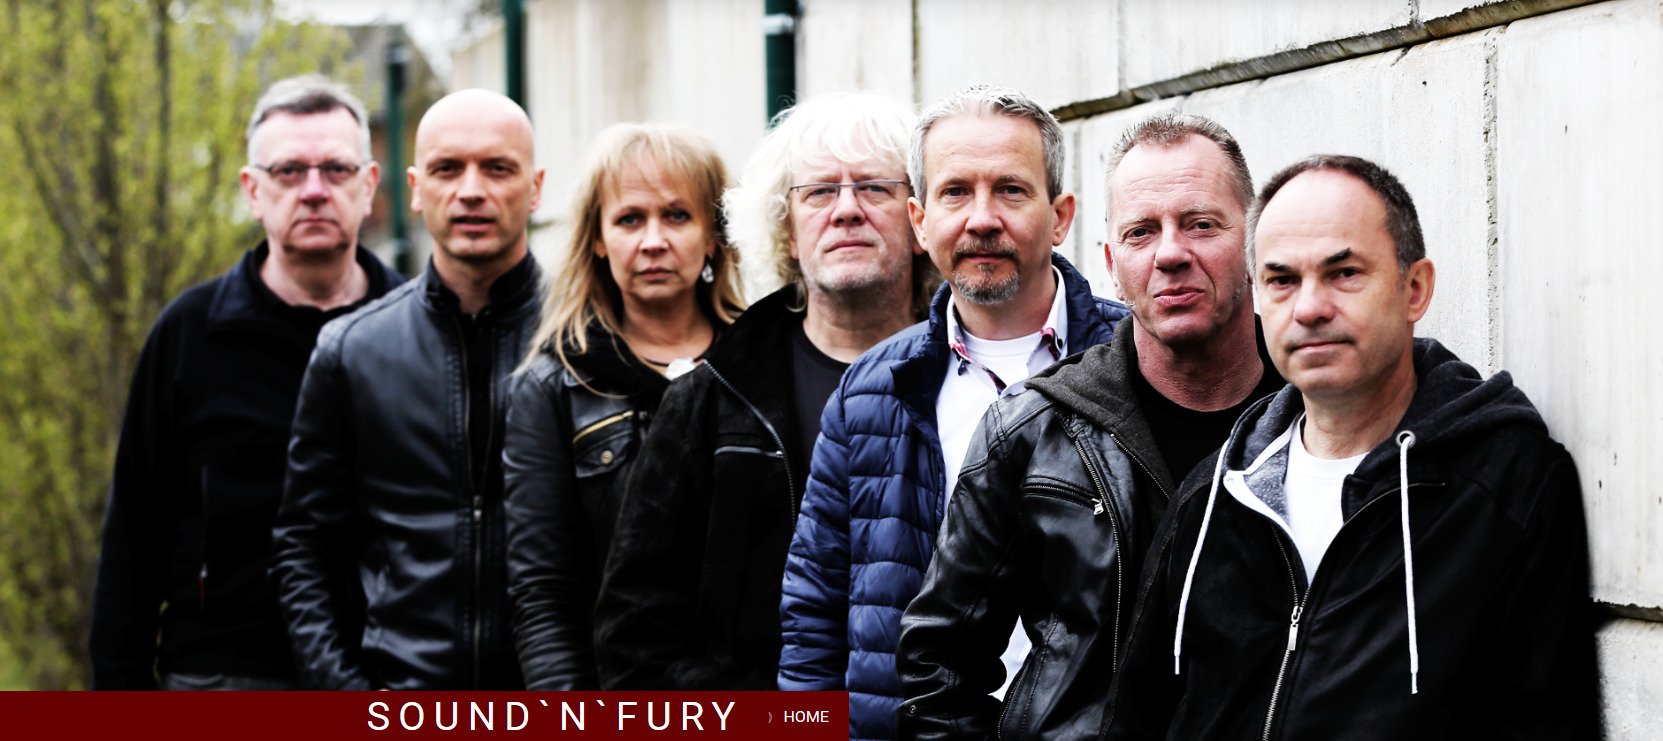 Sound'n Fury – An Acoustic Evening